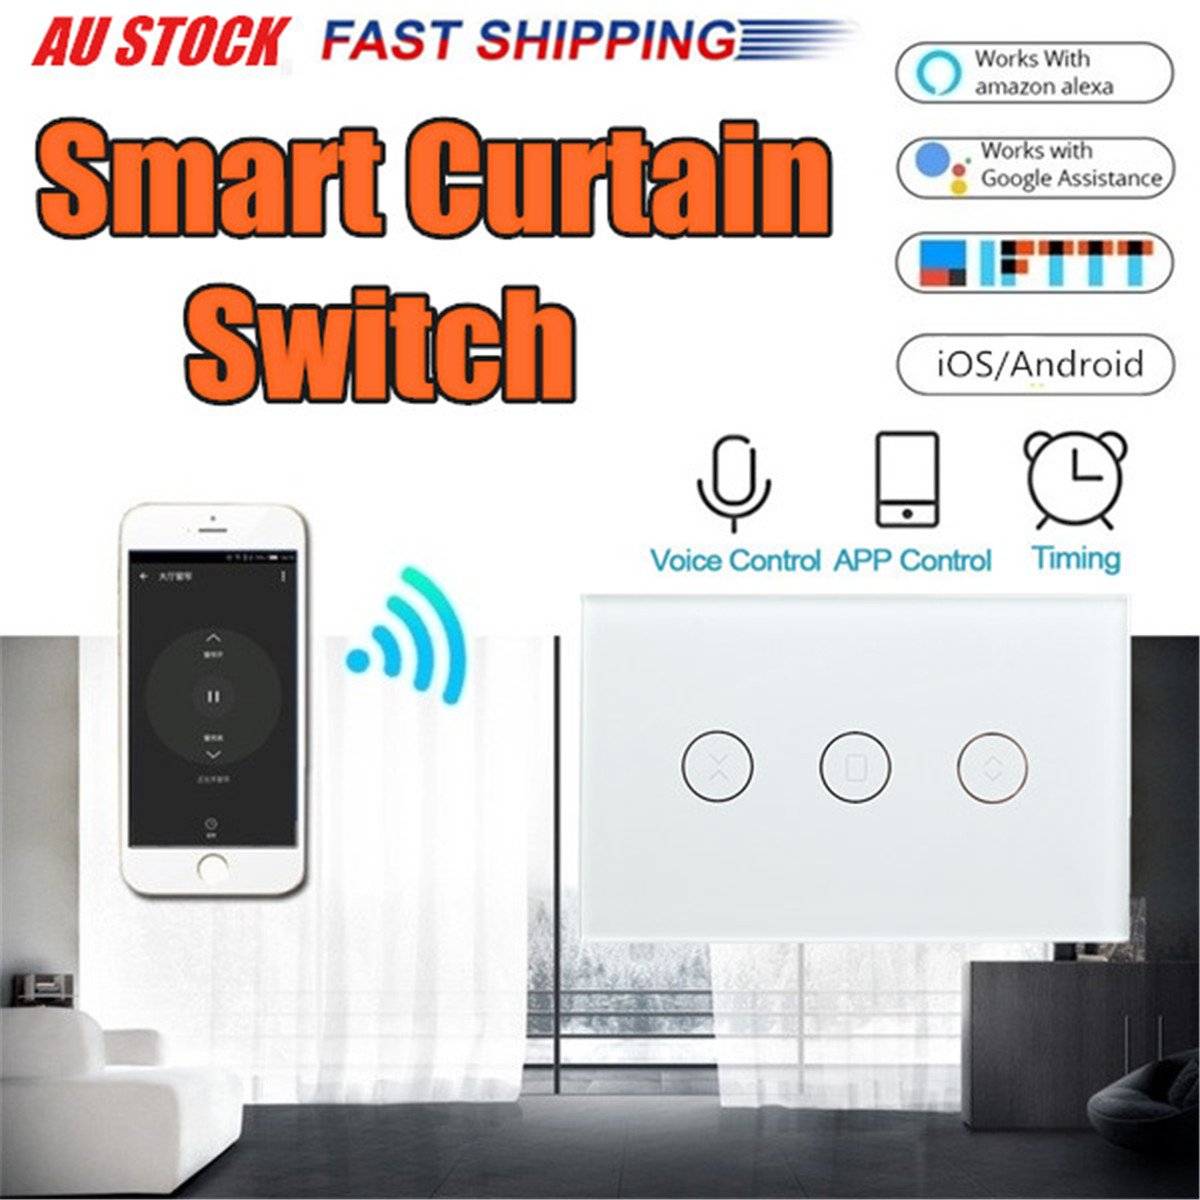 cafd3e Buy Curtain Smart And Get Free Shipping (Big Offer